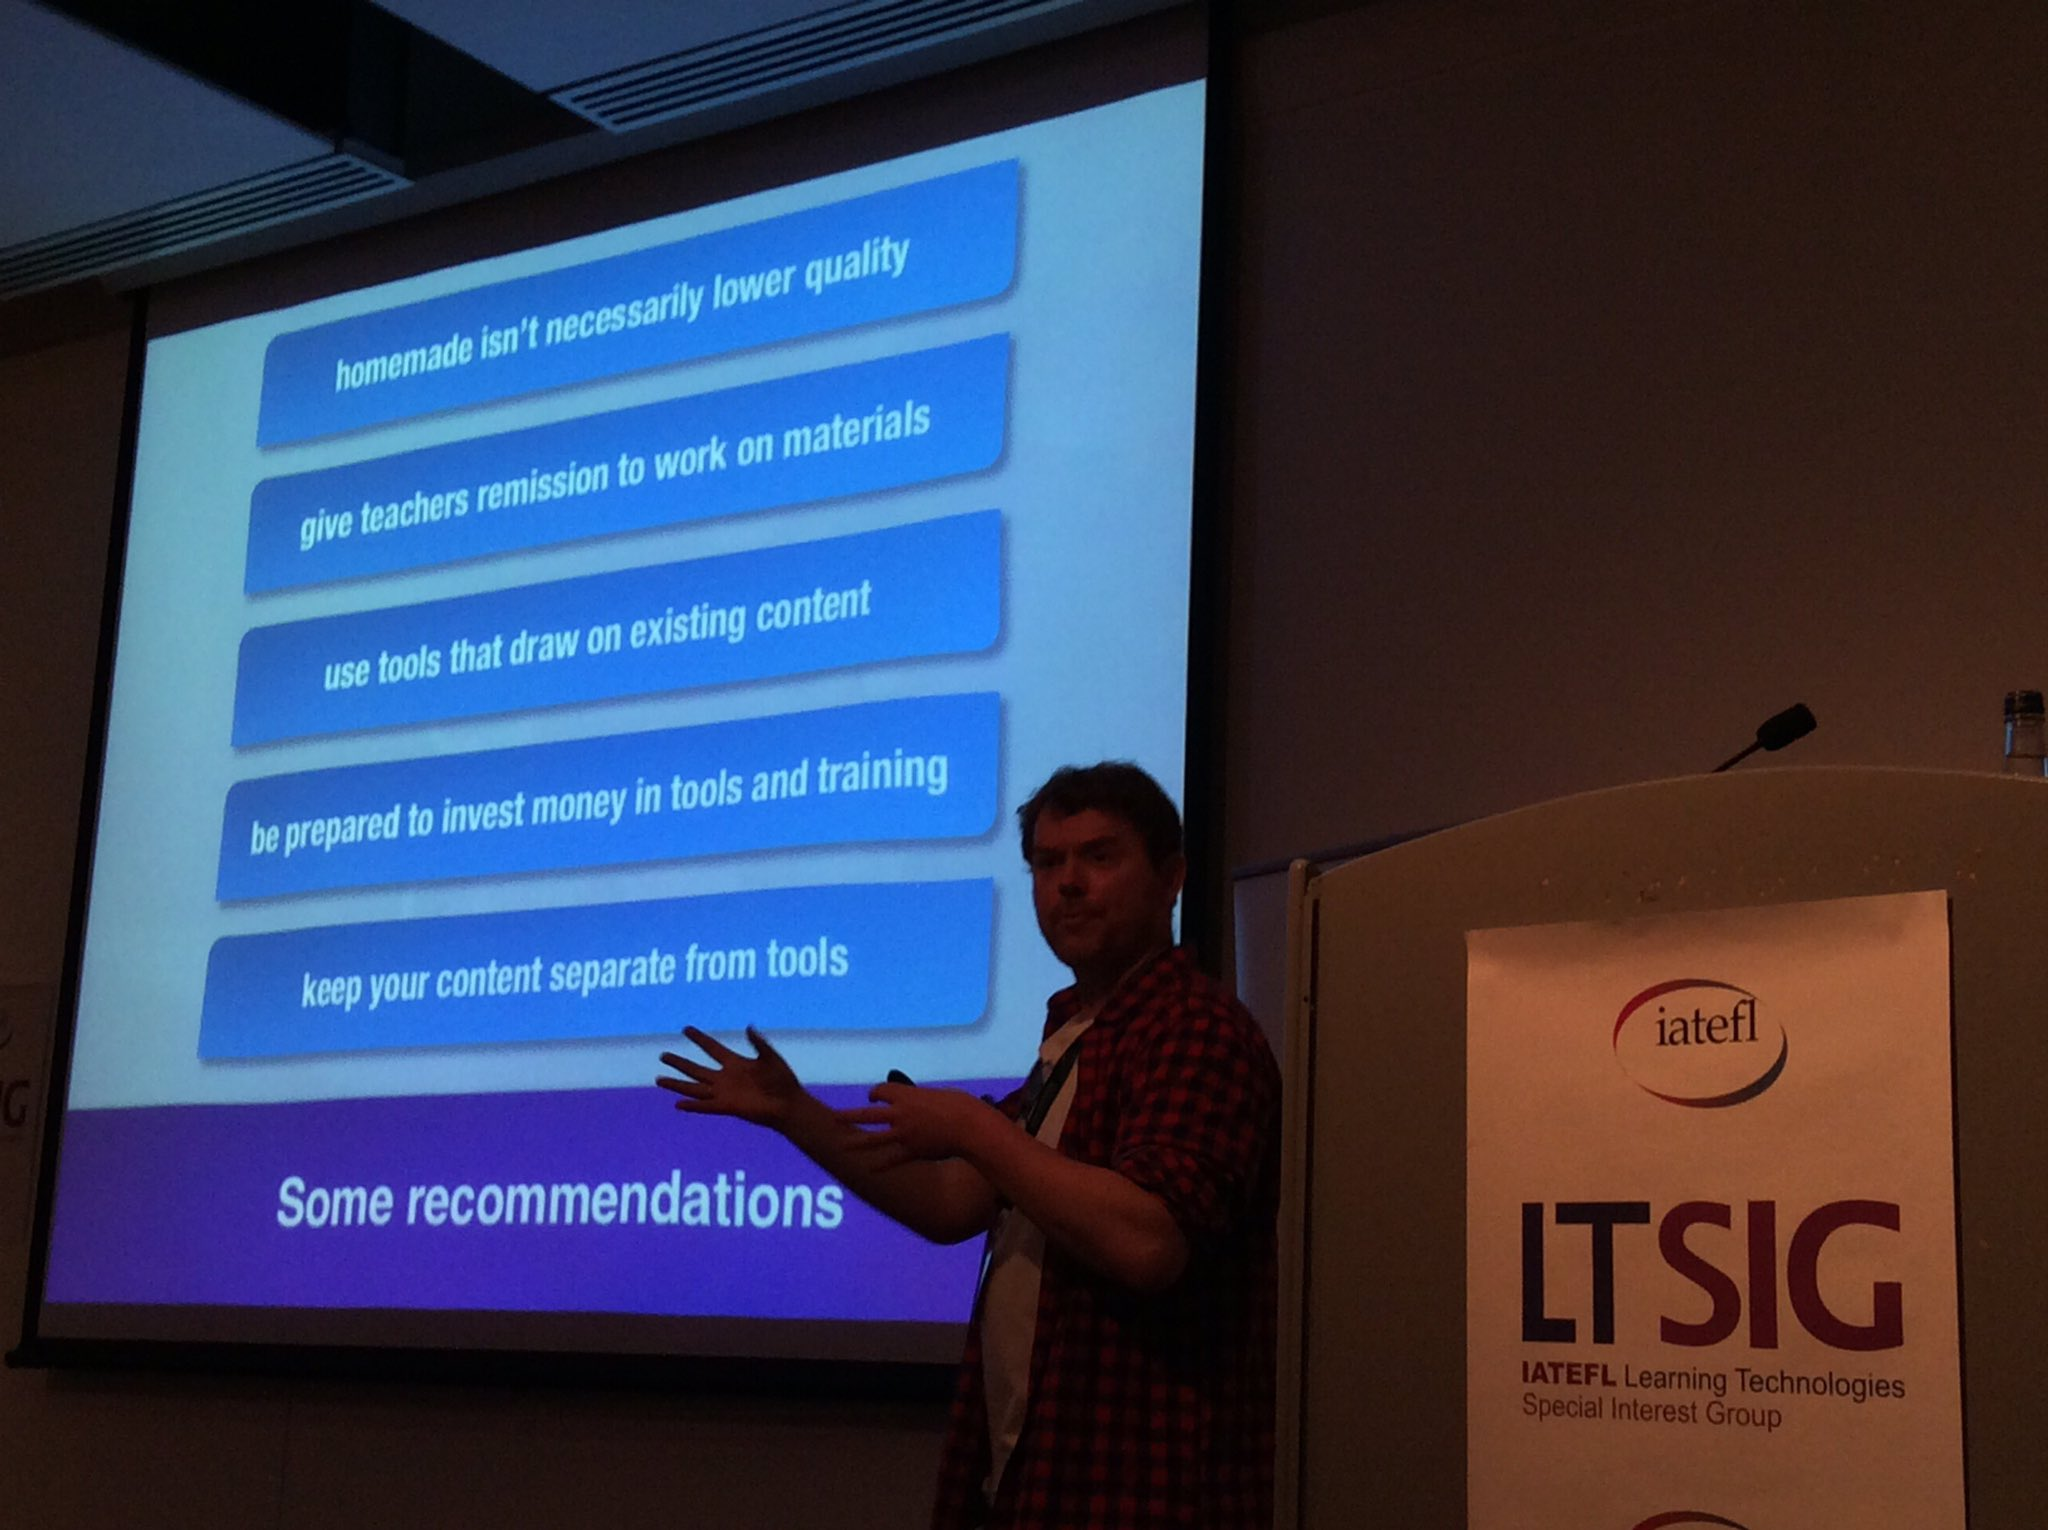 #iatefl17 #ltsig day David Read: some recommendations https://t.co/jemyaSRXS1